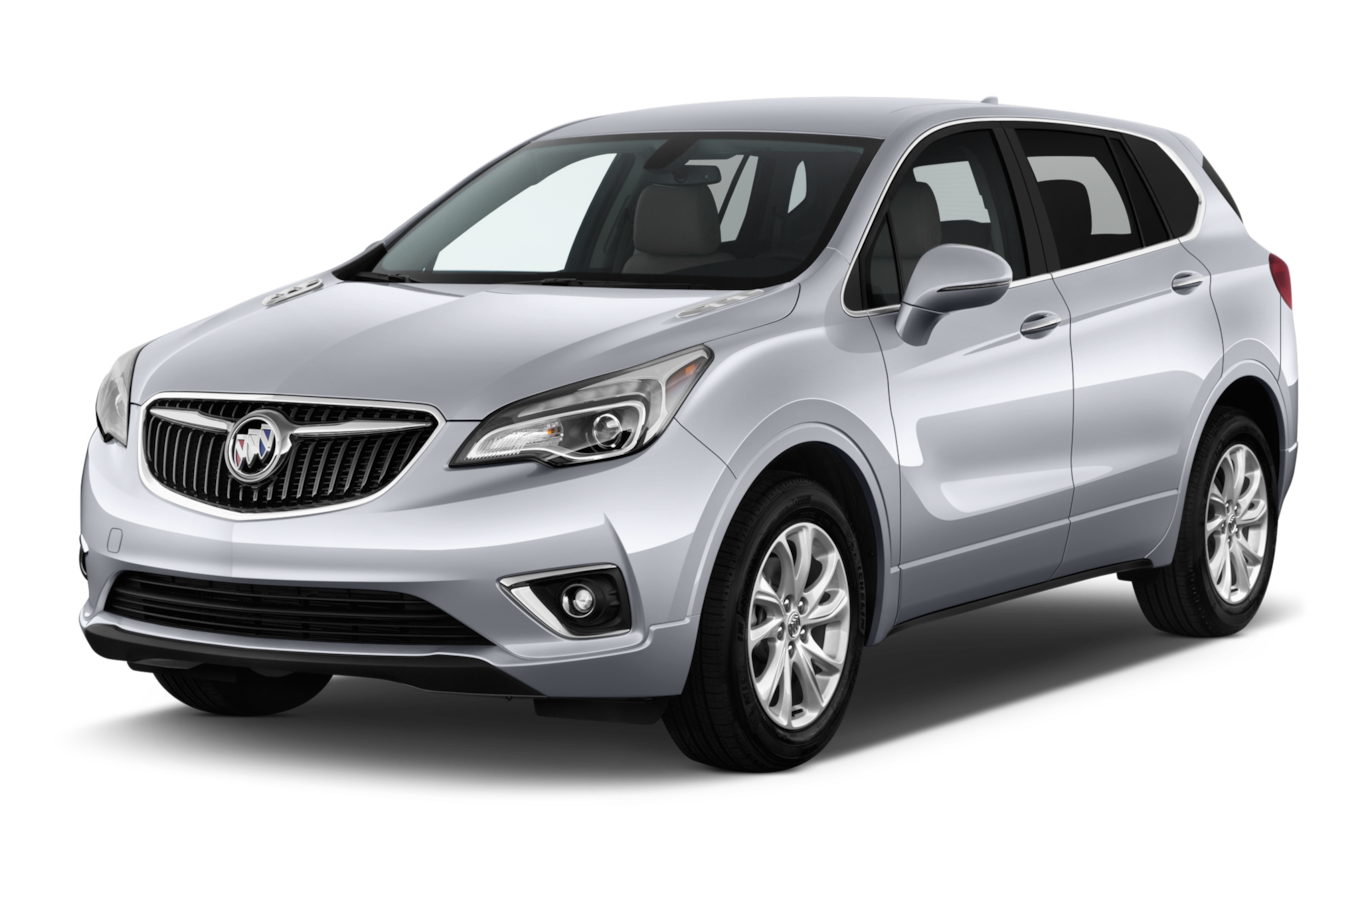 92 Gallery of 2019 Buick Envision Review with 2019 Buick Envision